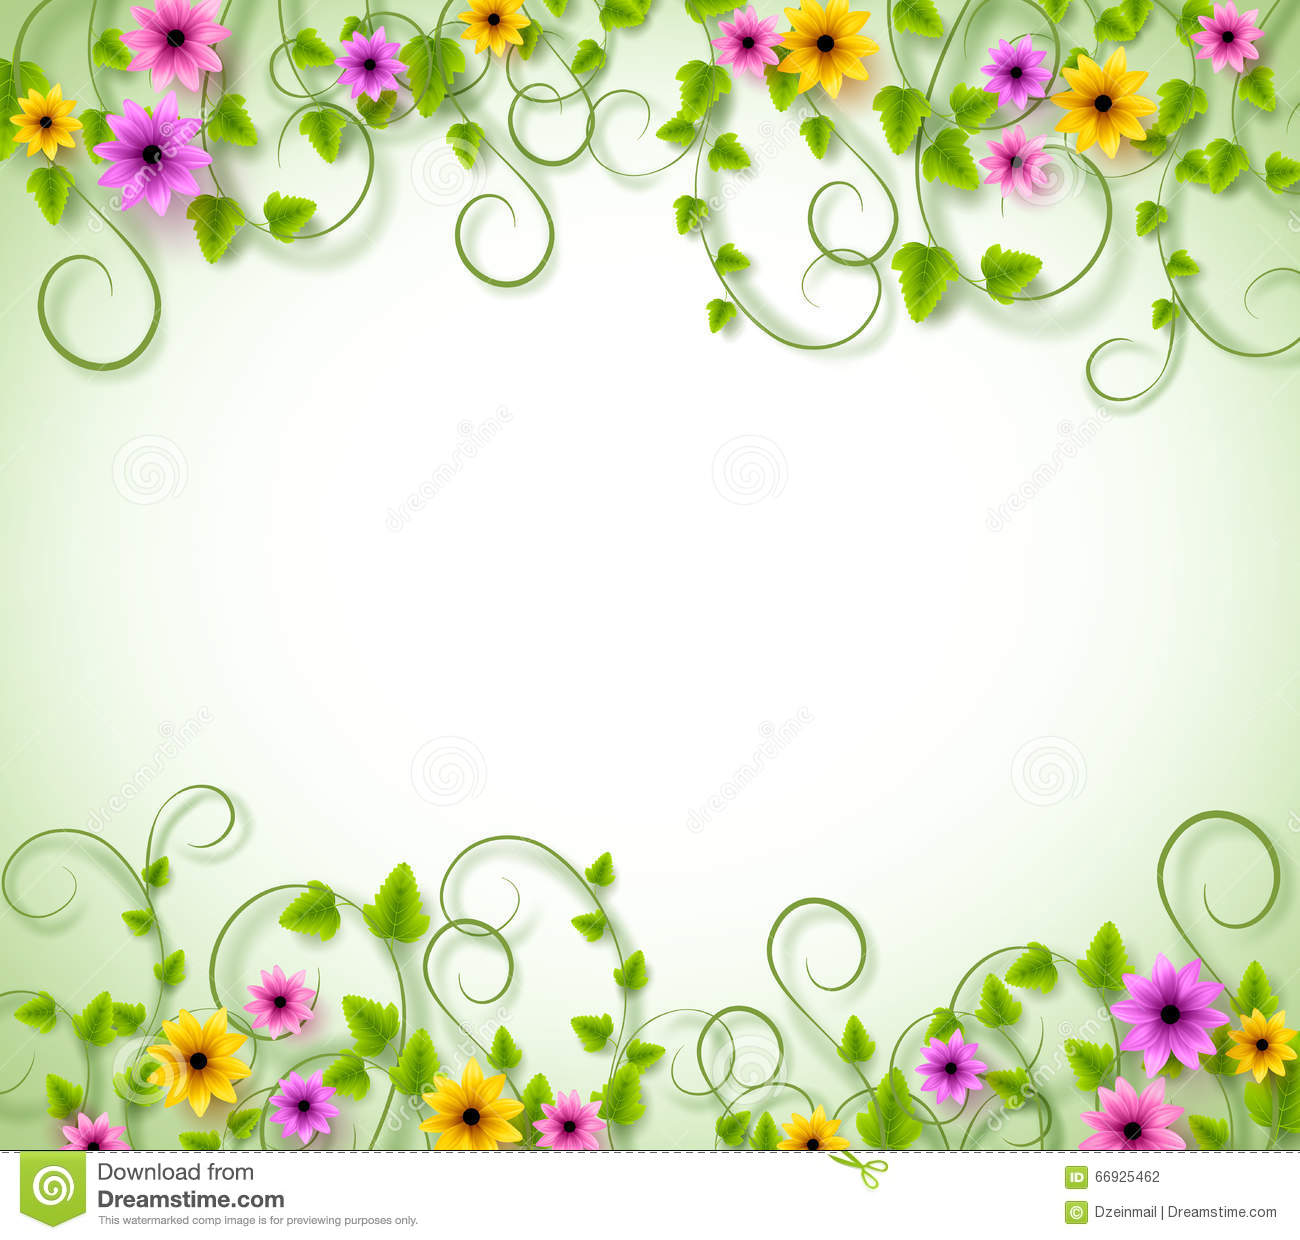 Vines Background For Spring Season With Realistic Colorful